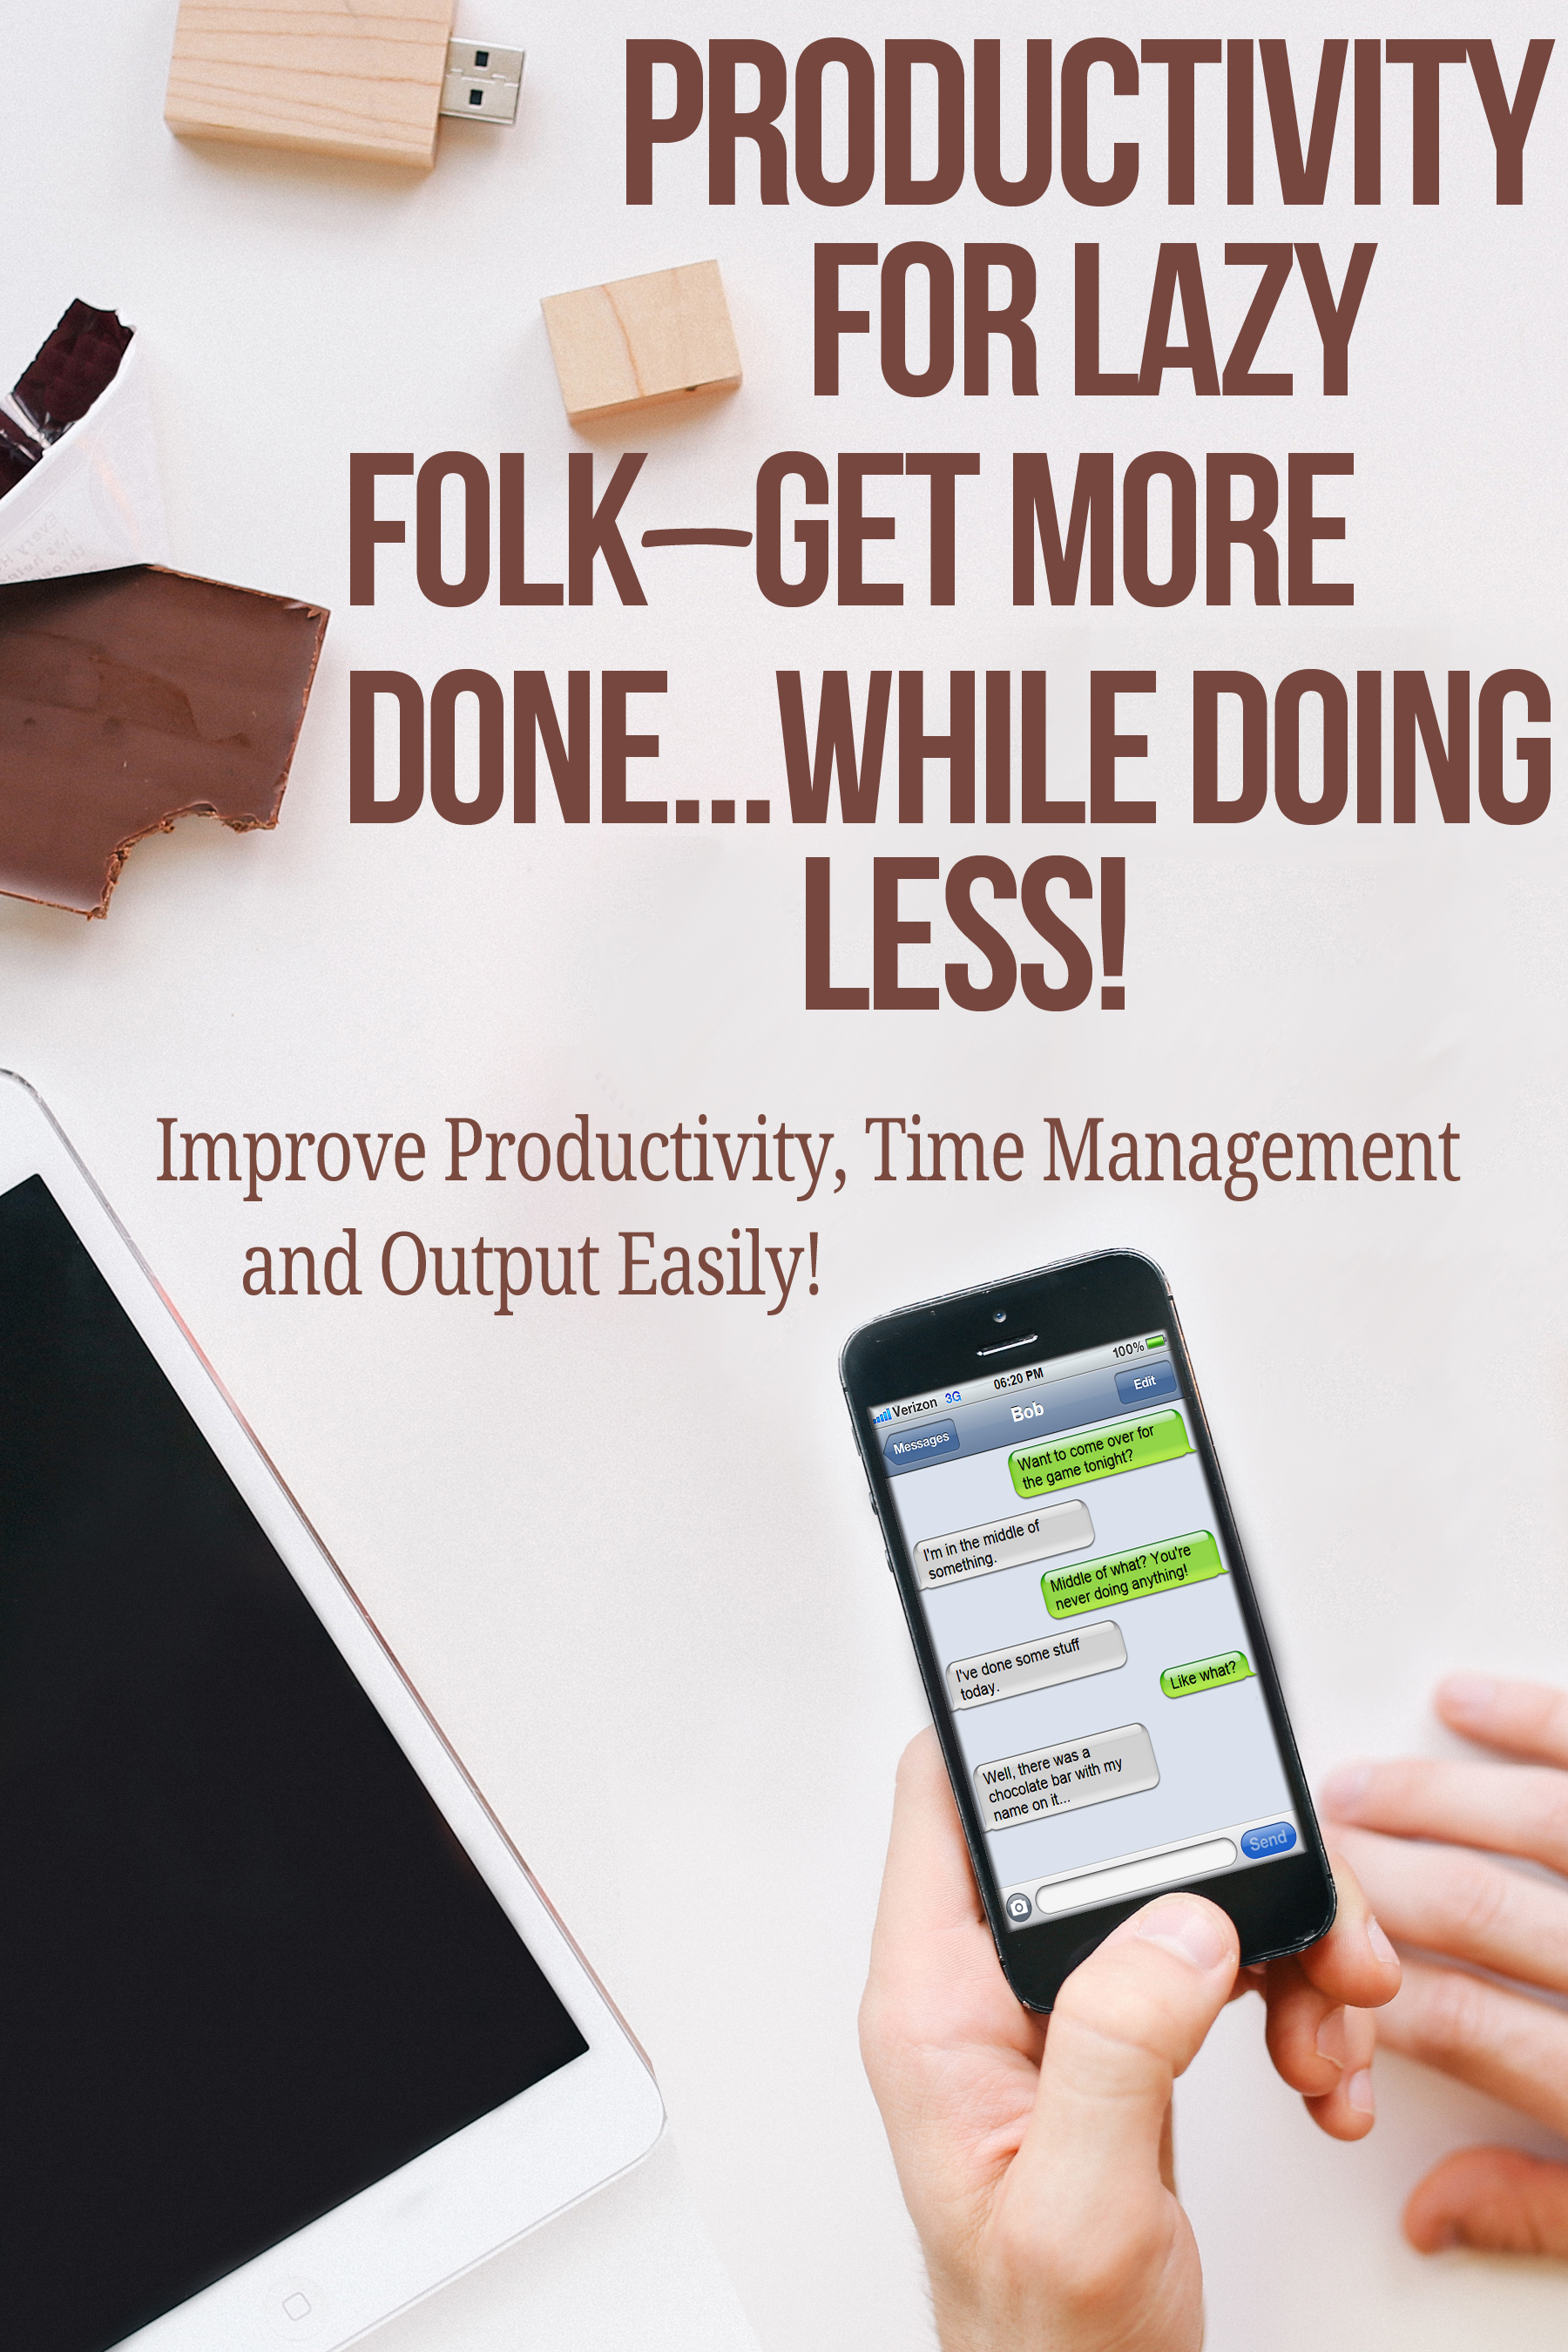 Productivity for Lazy Folk